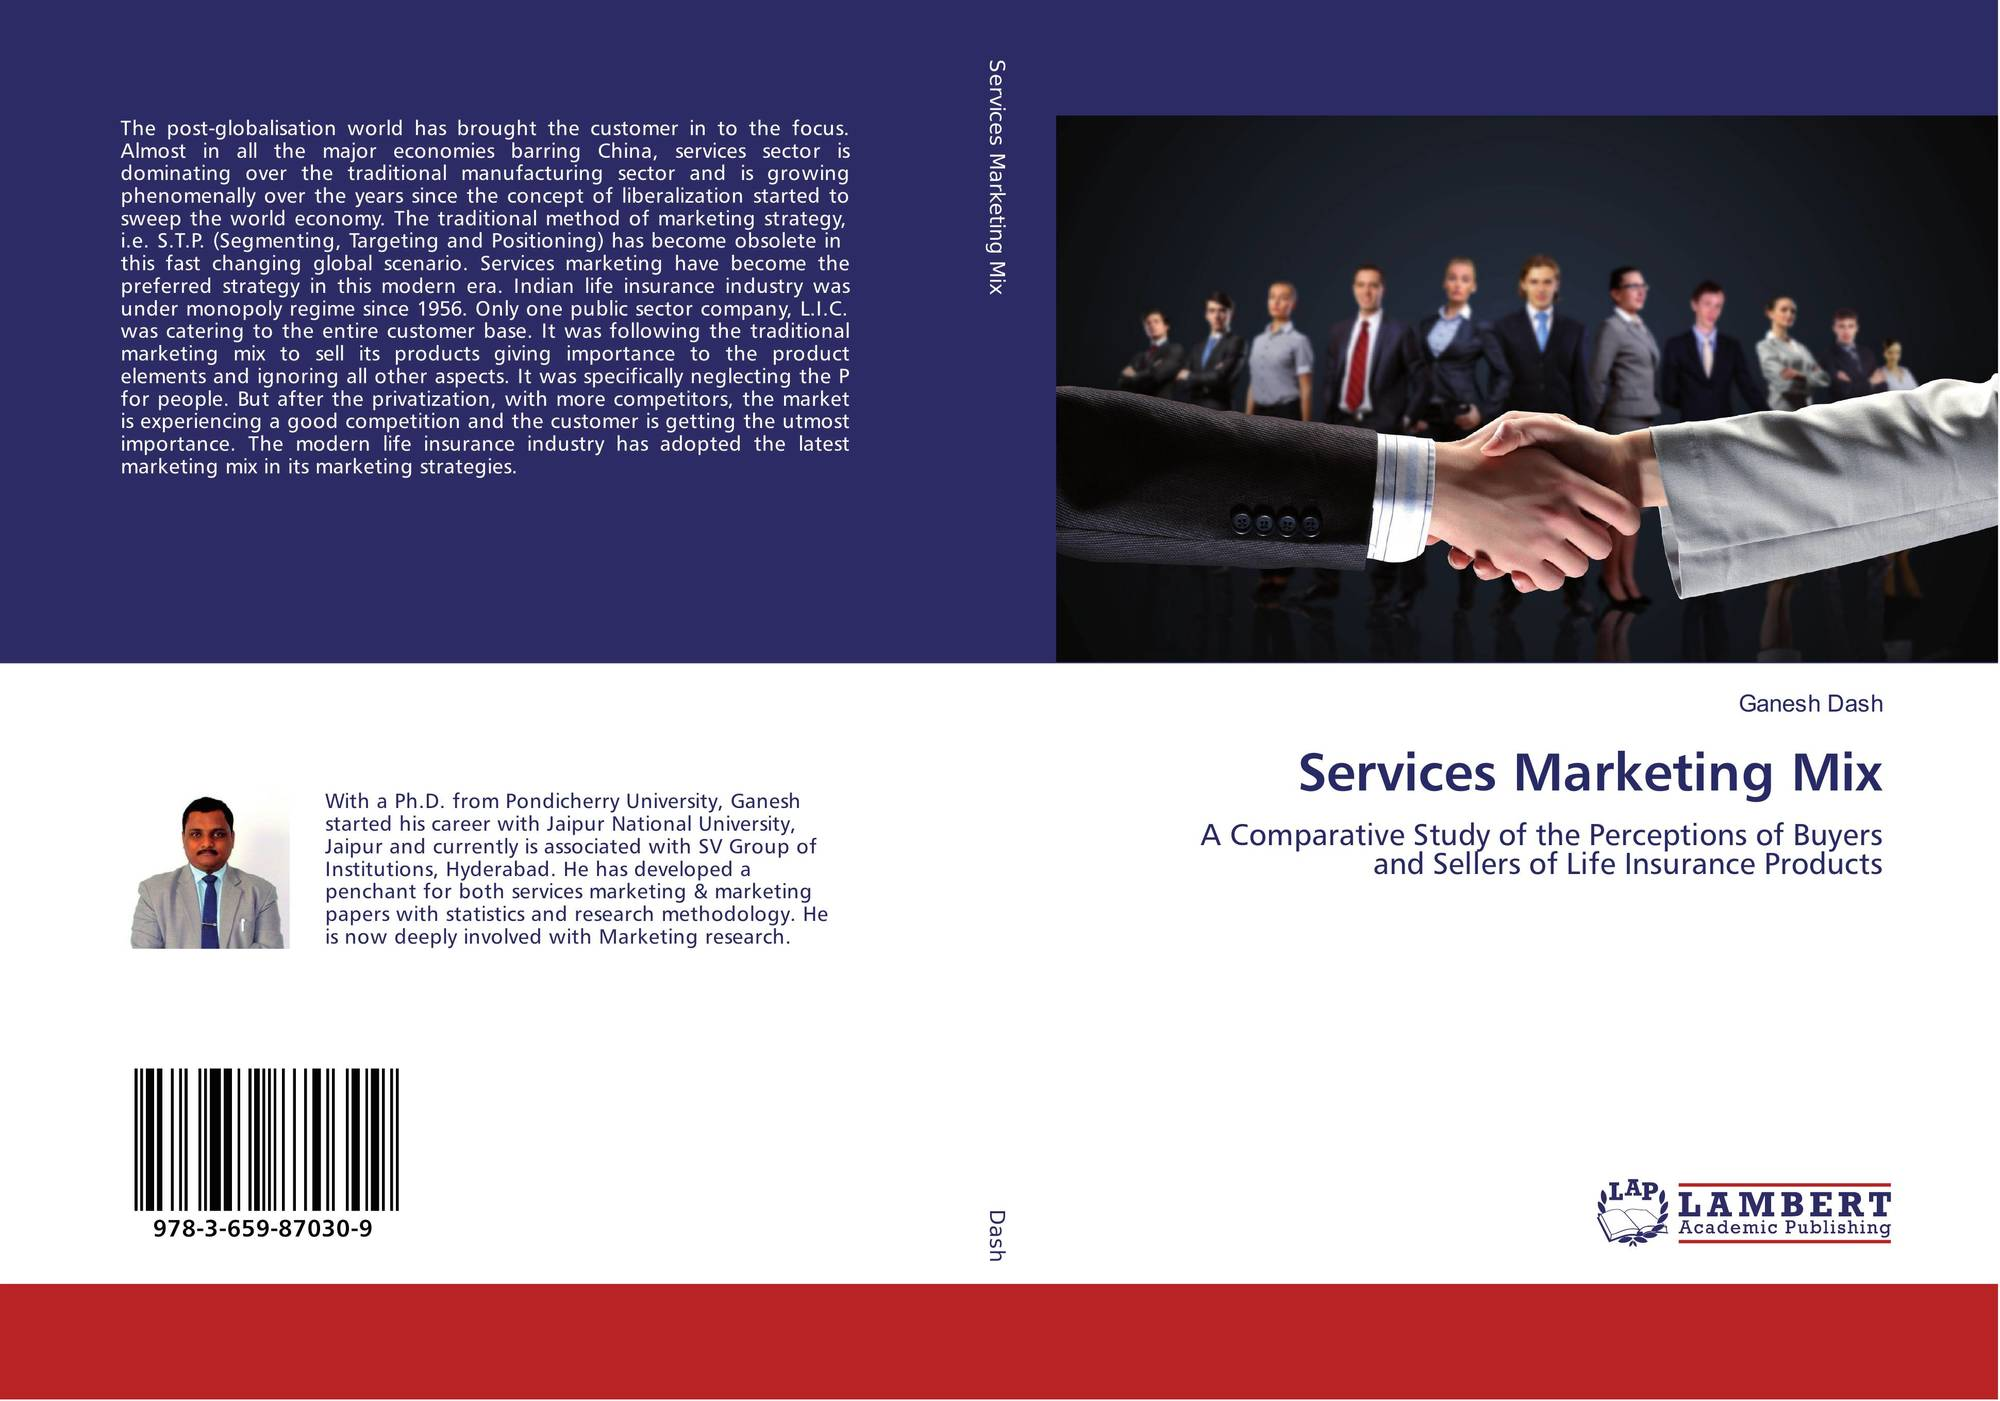 service marketing mix for insurance The service marketing mix is also known as an extended marketing mix and is an integral part of a service  please explain all about marketing in insurance sector.